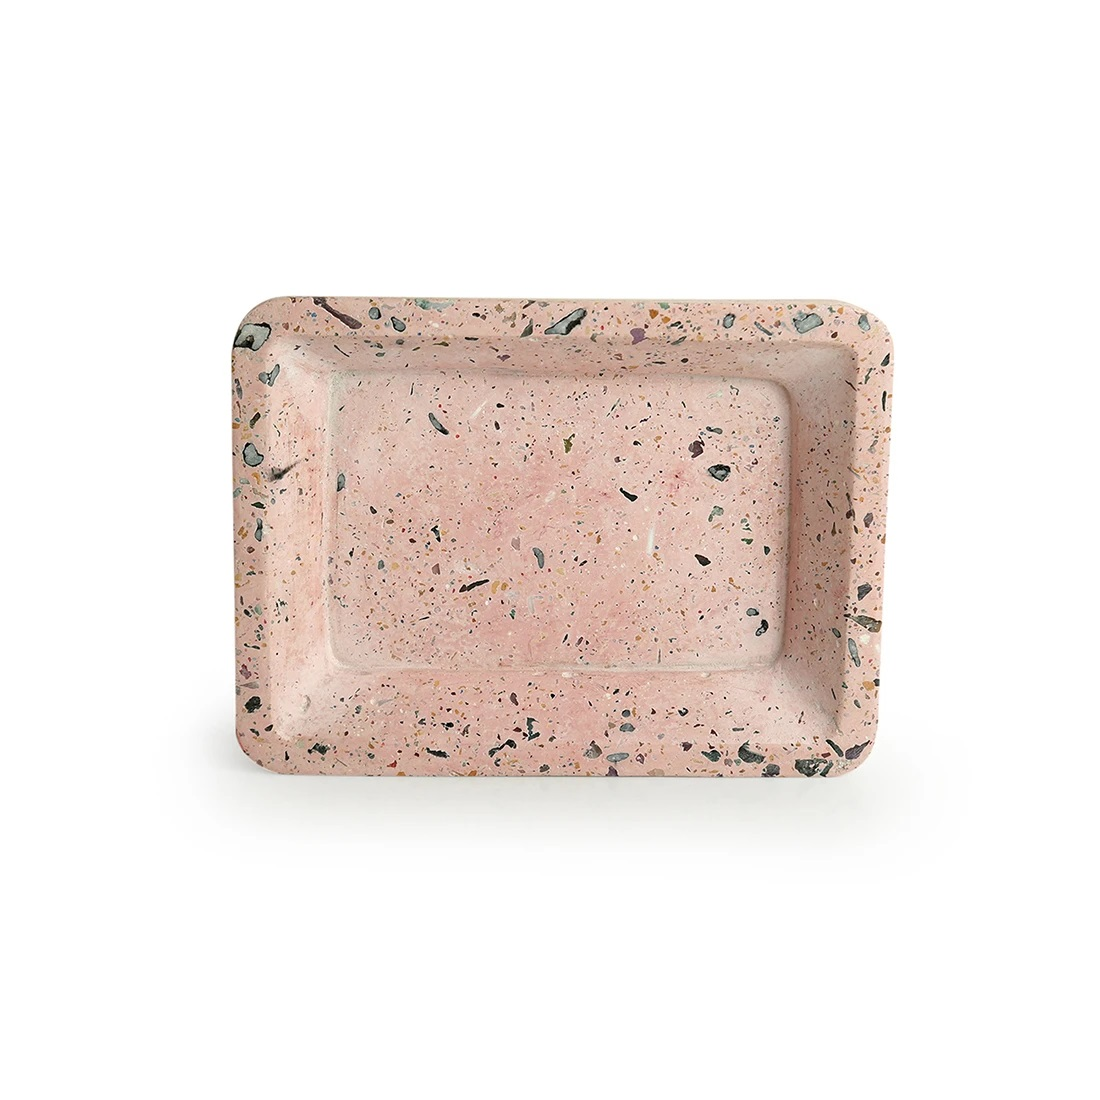 Moorni Four Ends of a Tray Handcrafted Terrazzo Multi-utility Knick Knack Organizer Tray In Concrete